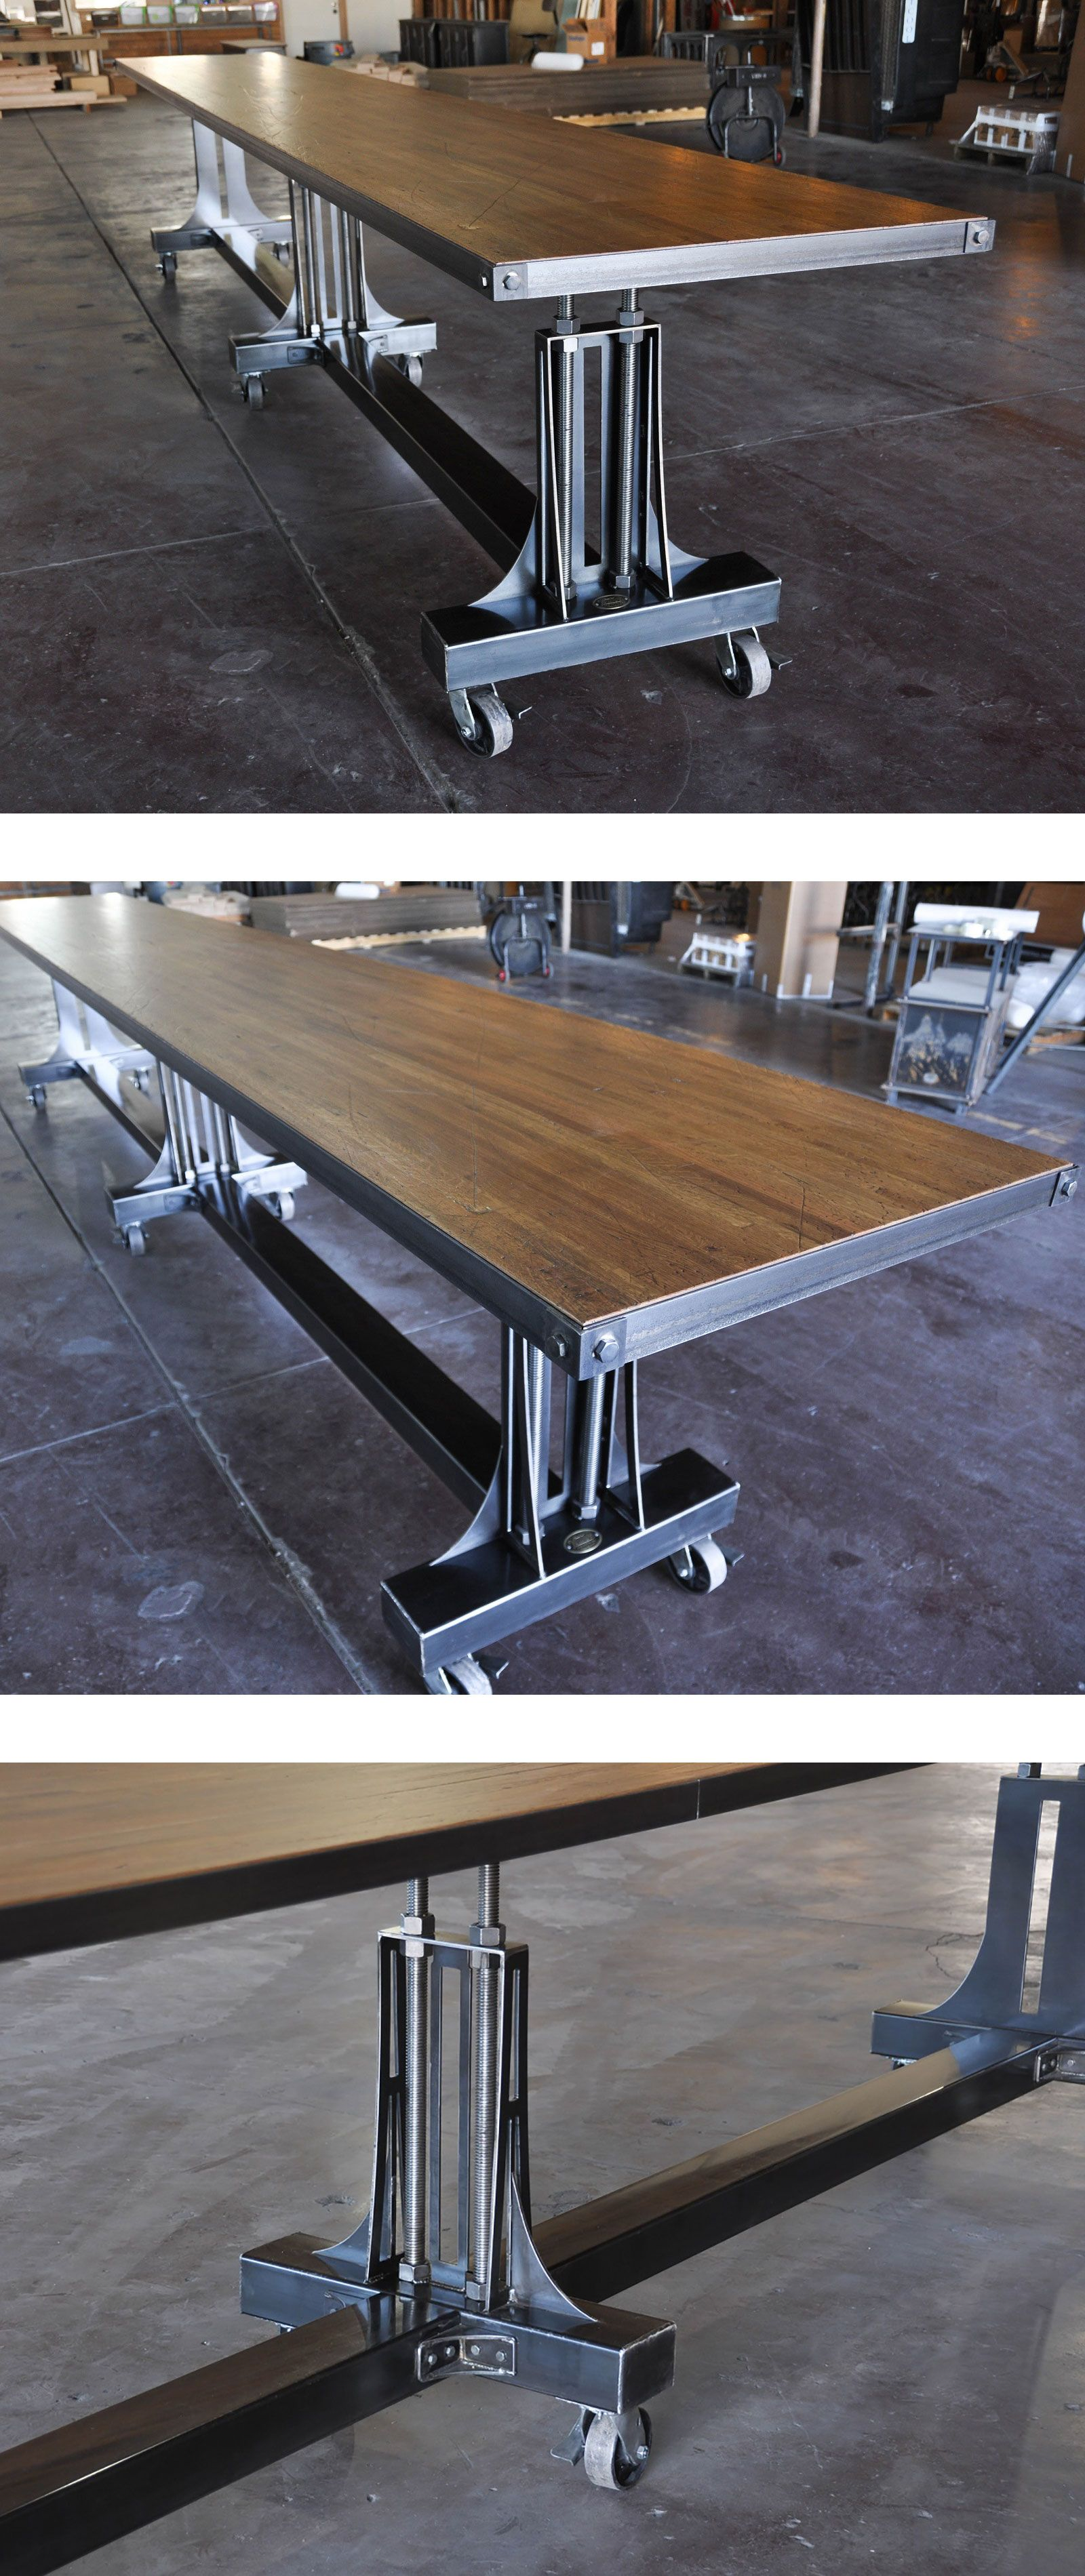 Post industrial conference table vintage industrial furniture - Post Industrial Table By Vintage Industrial Furniture In Phoenix Az